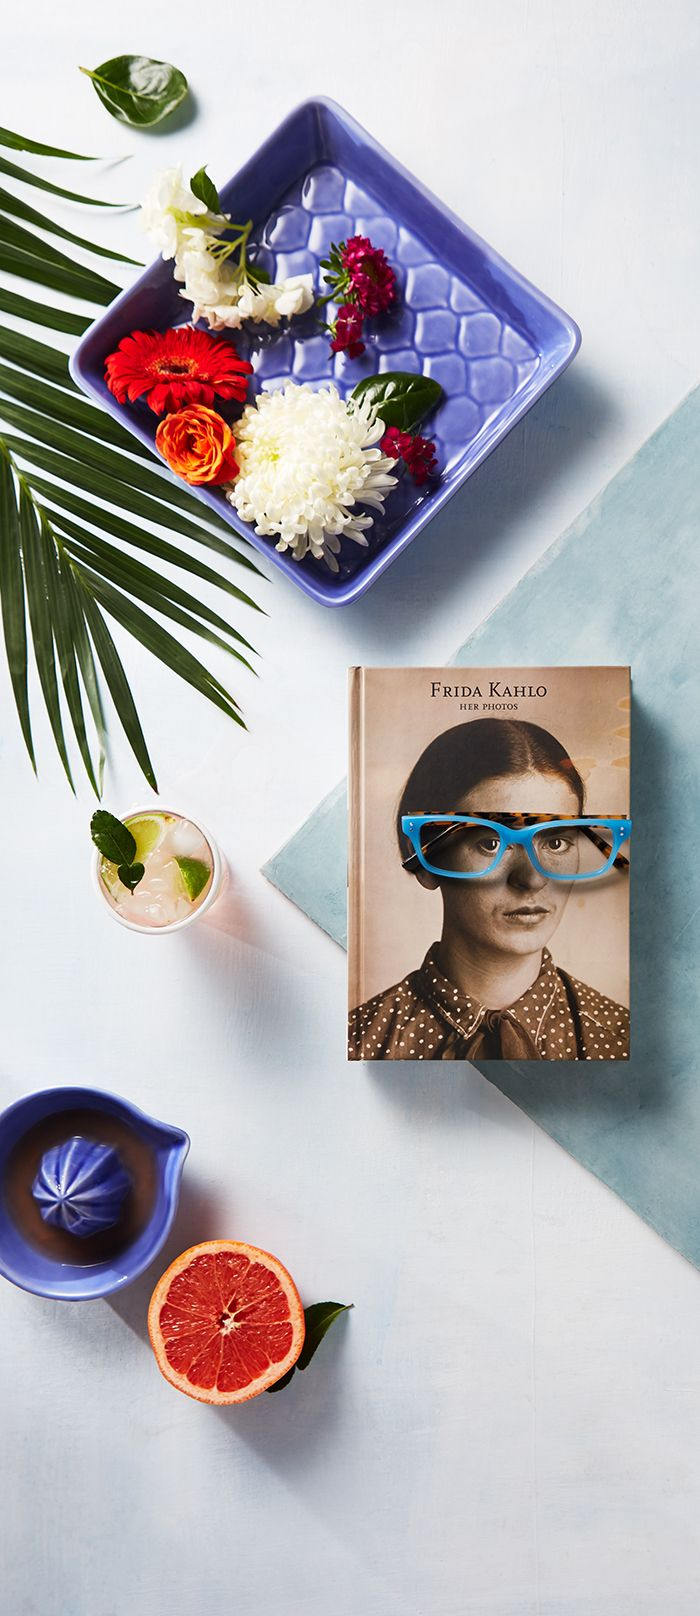 When it comes to the inspiring minds we want to know, our favorite fascinating figure of all time, our ultimate if-you-could-spend-an-evening-with-anyone attendee, has got to be Frida Kahlo. Her un…